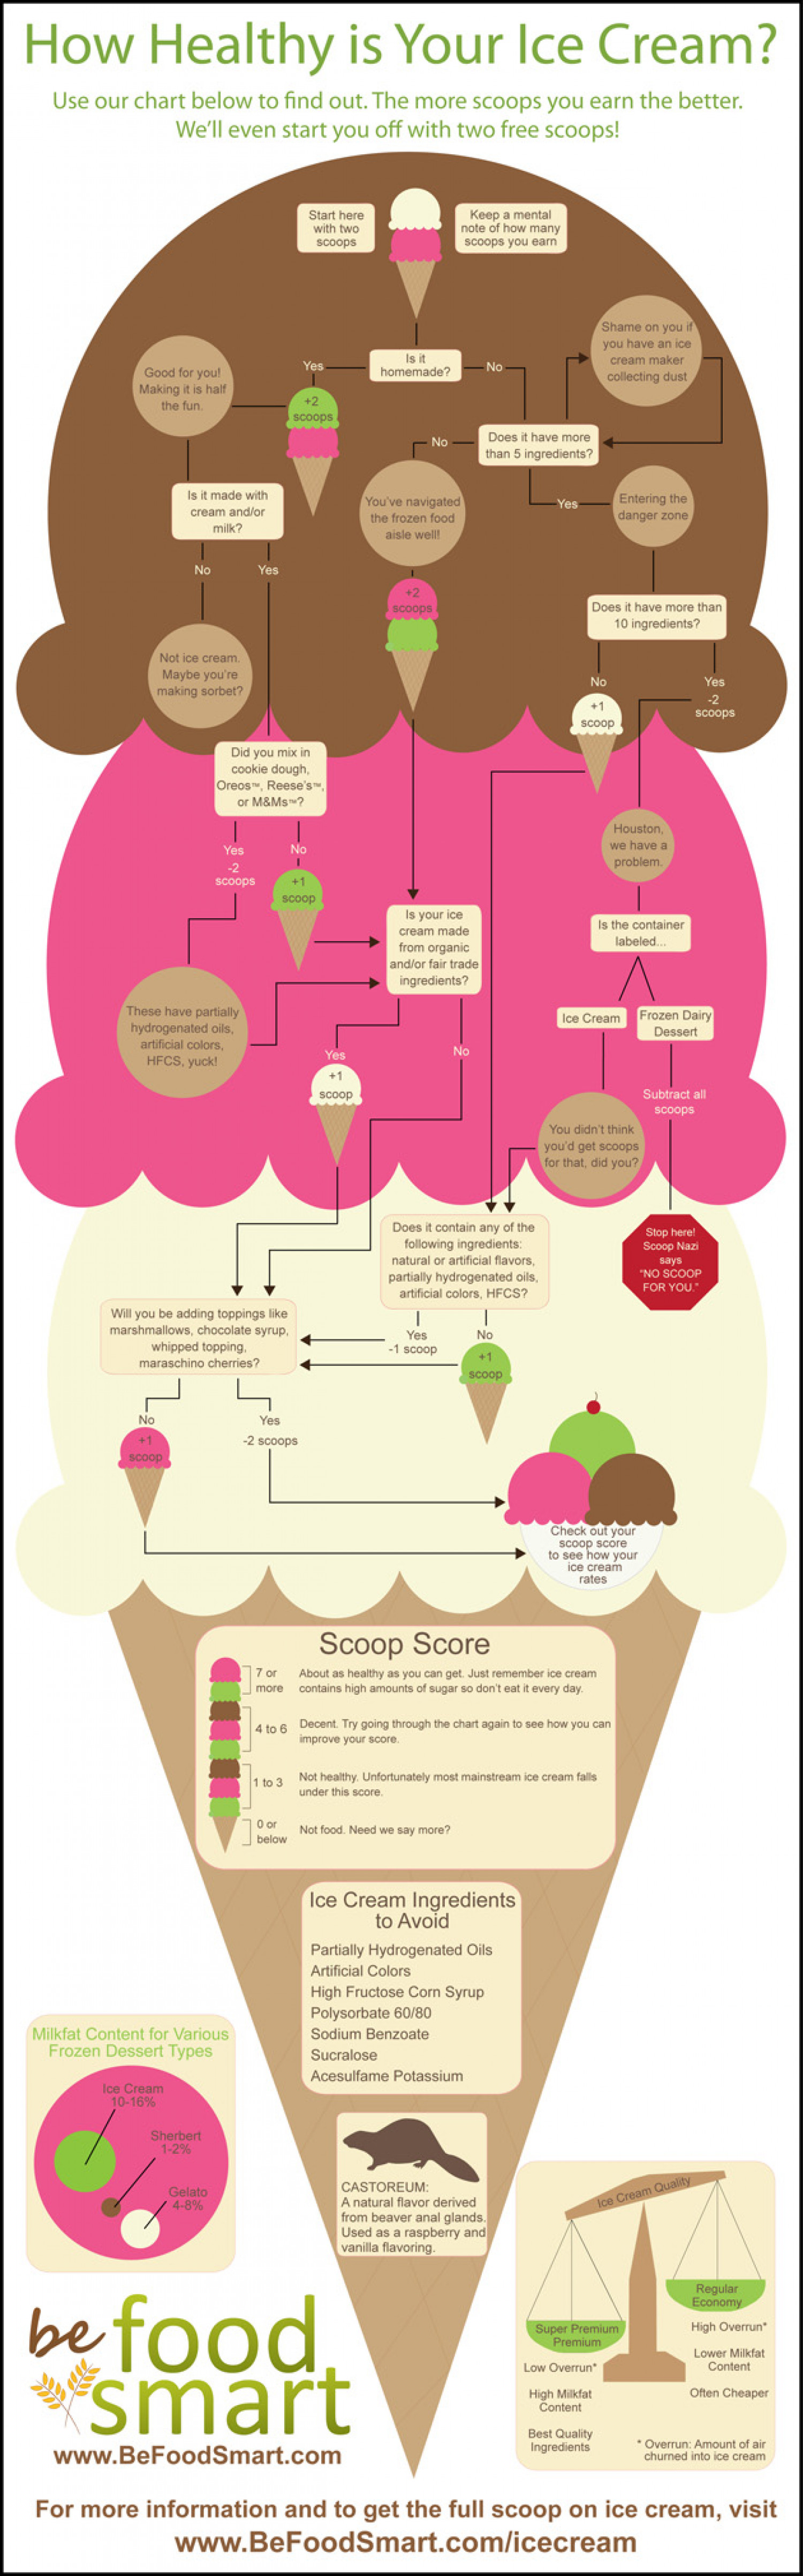 How Healthy is Your Ice Cream Infographic